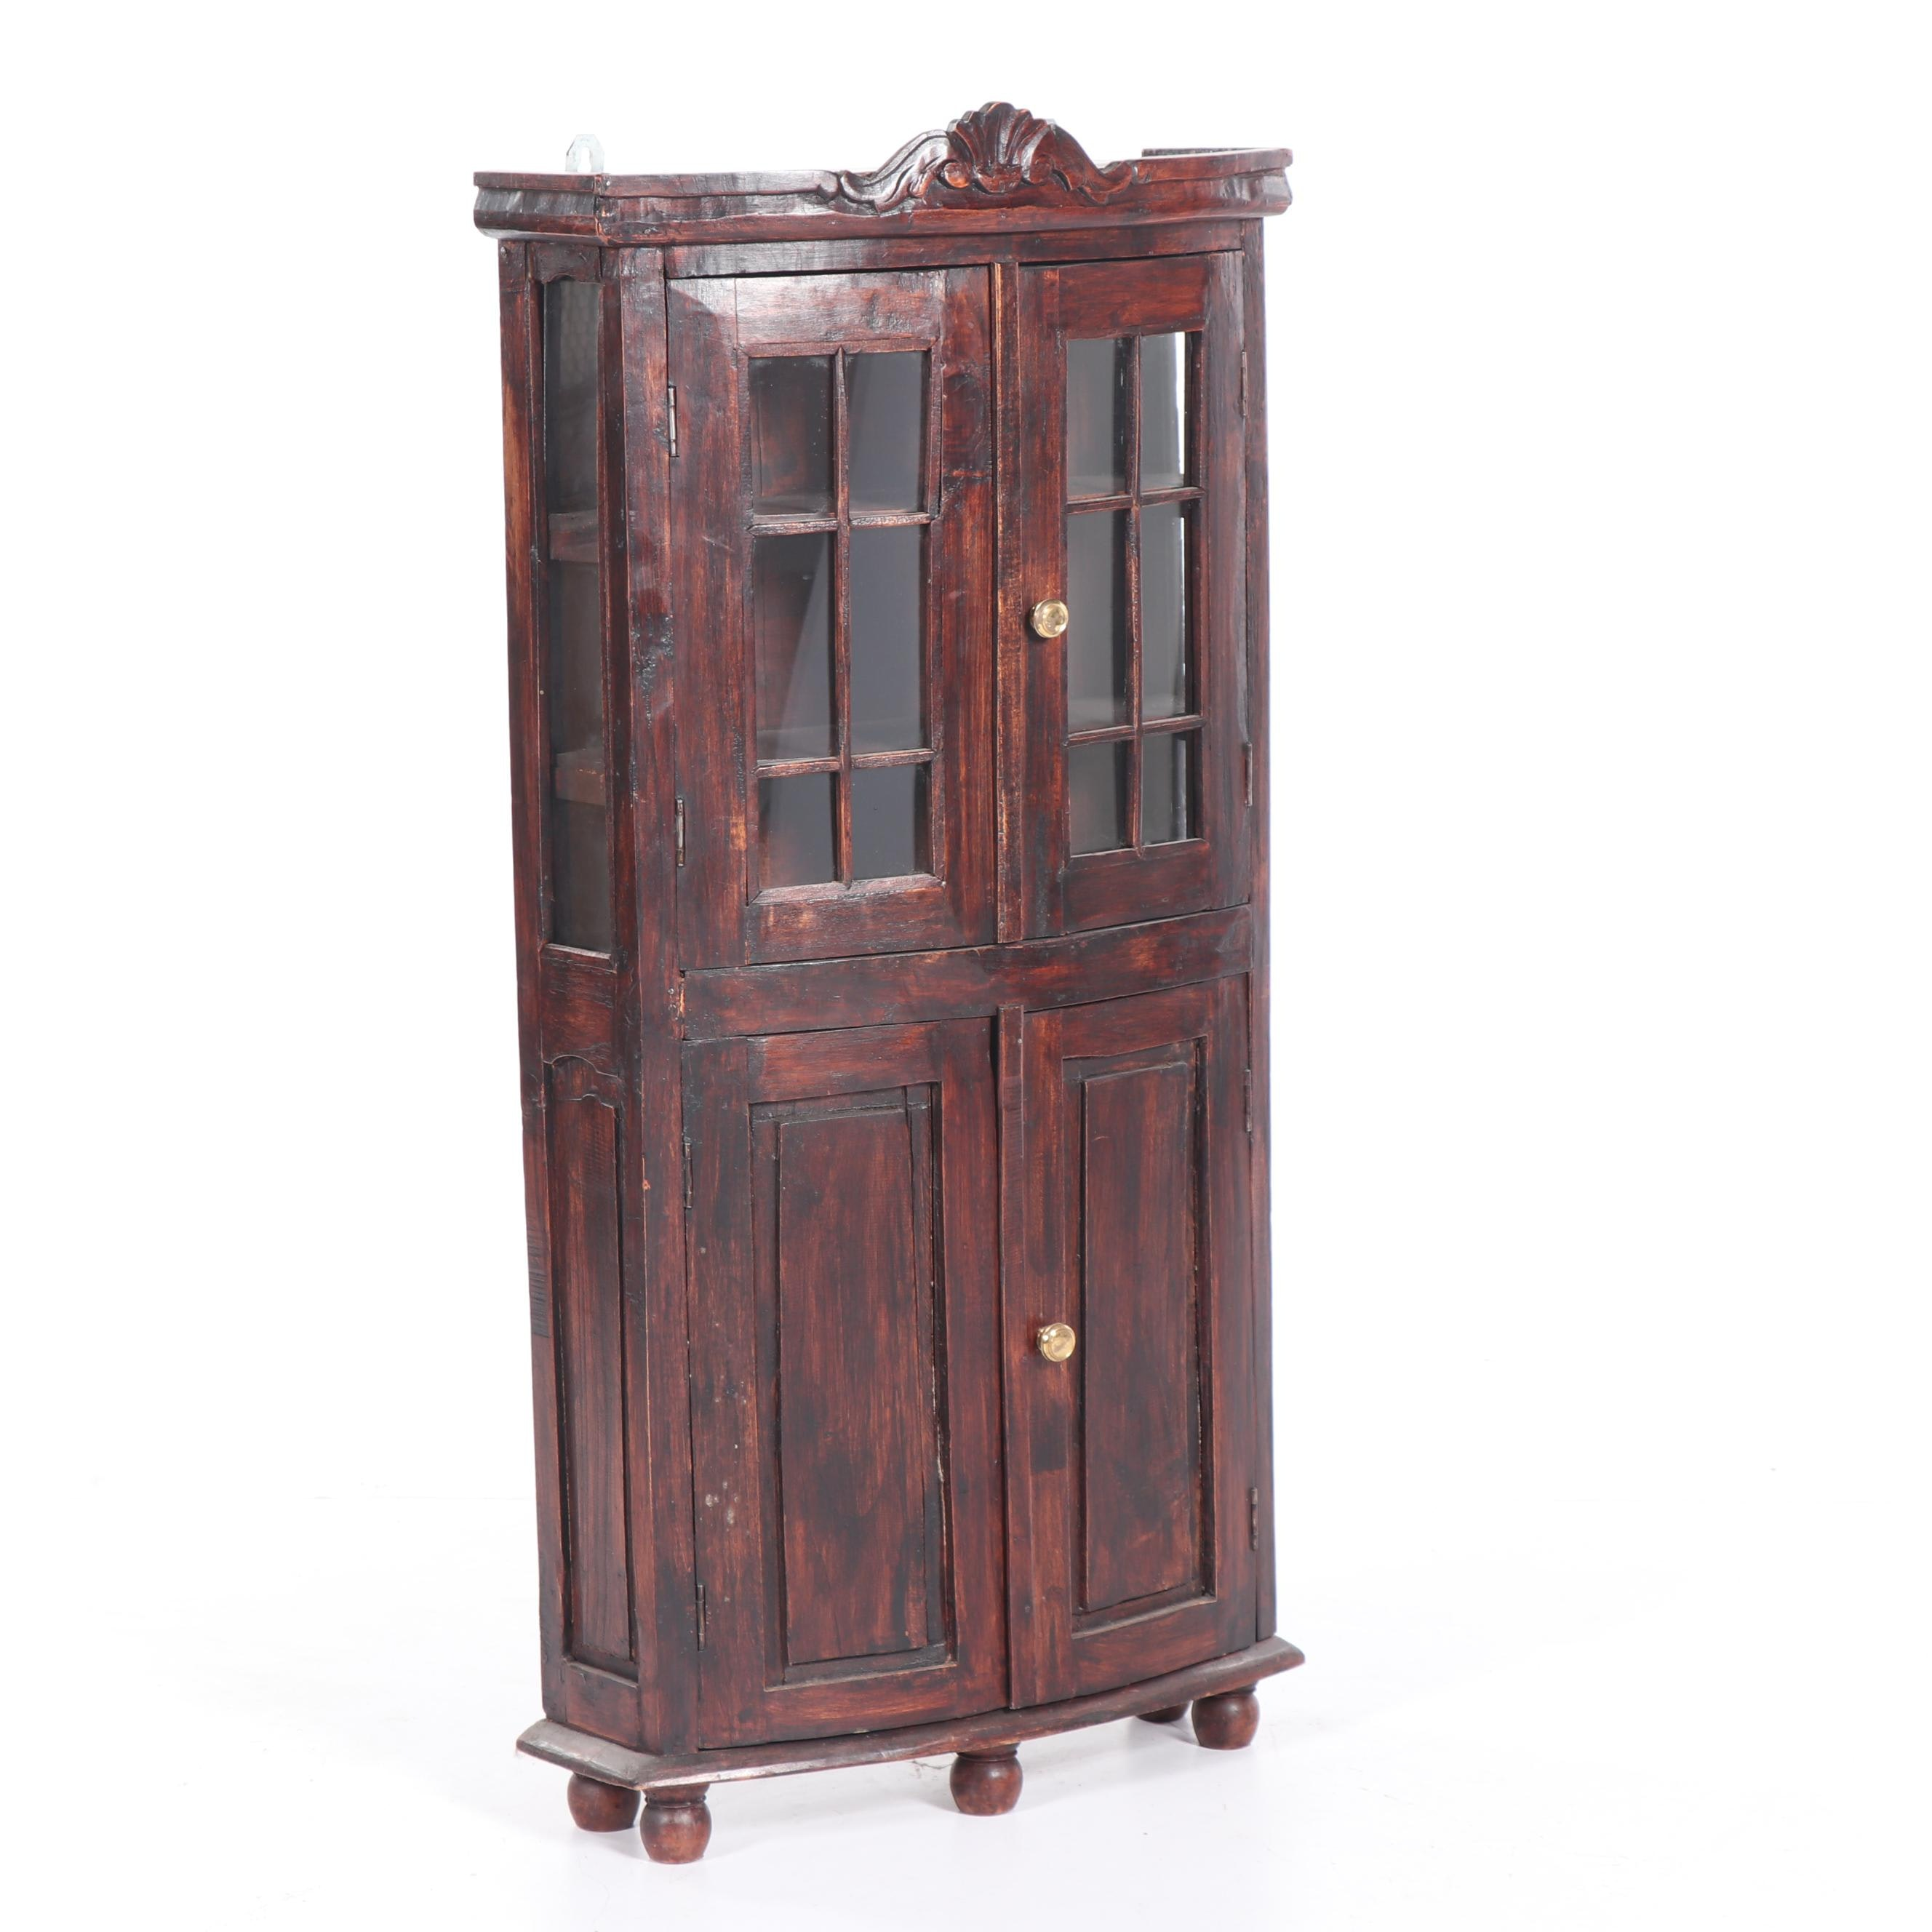 Wooden Wall-Hanging Curio Cabinet